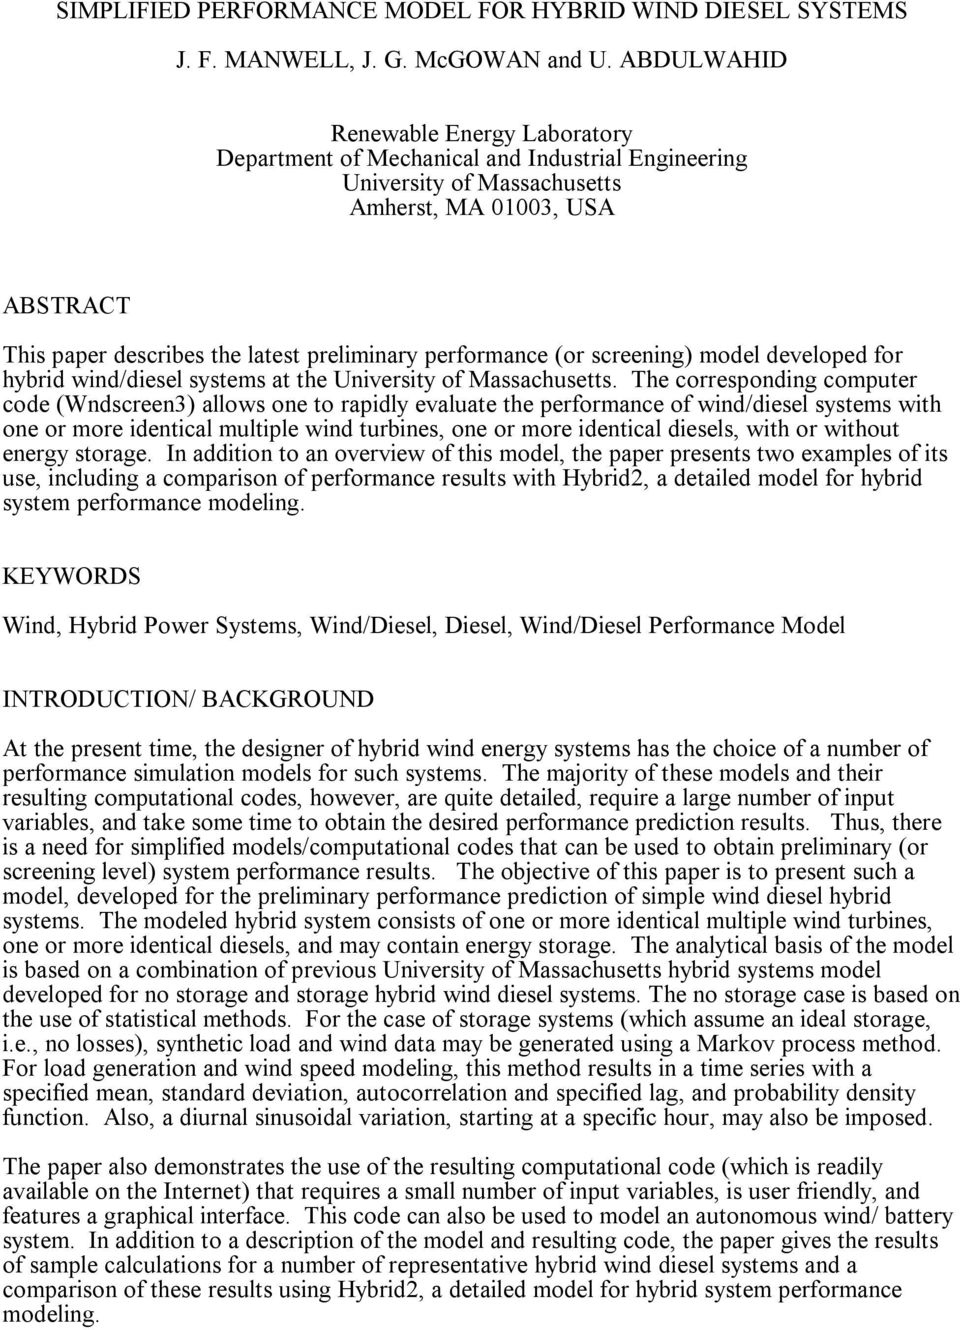 performance (or screening) model developed for hybrid wind/diesel systems at the University of Massachusetts.